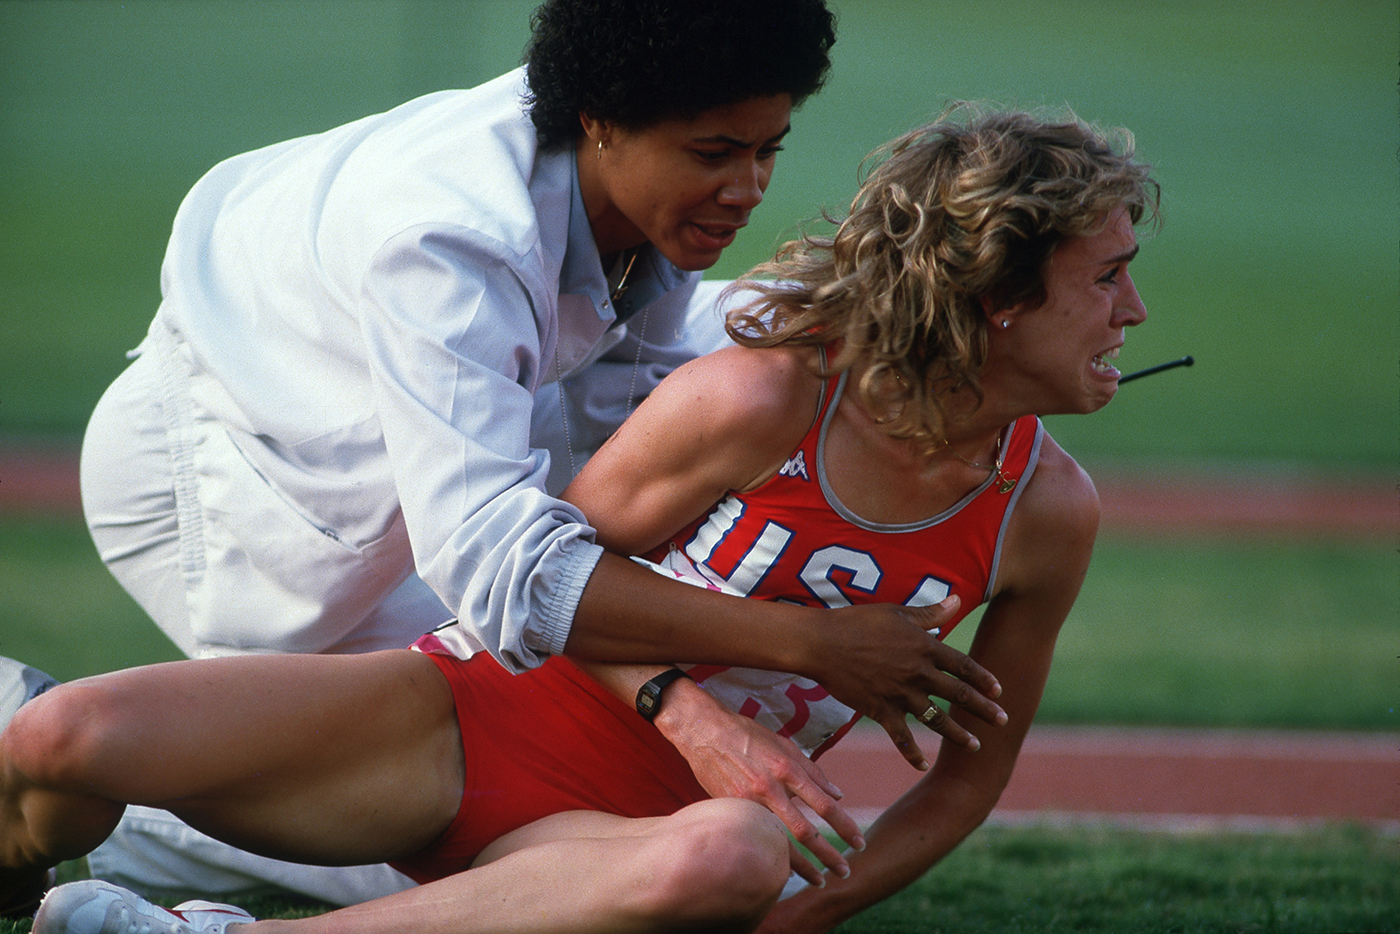 THE picture of the 1984 Olympics in Los Angeles: Mary Decker falls during the finals of the 3,000 meters.© 2015 David Burnett/Contact Press Images